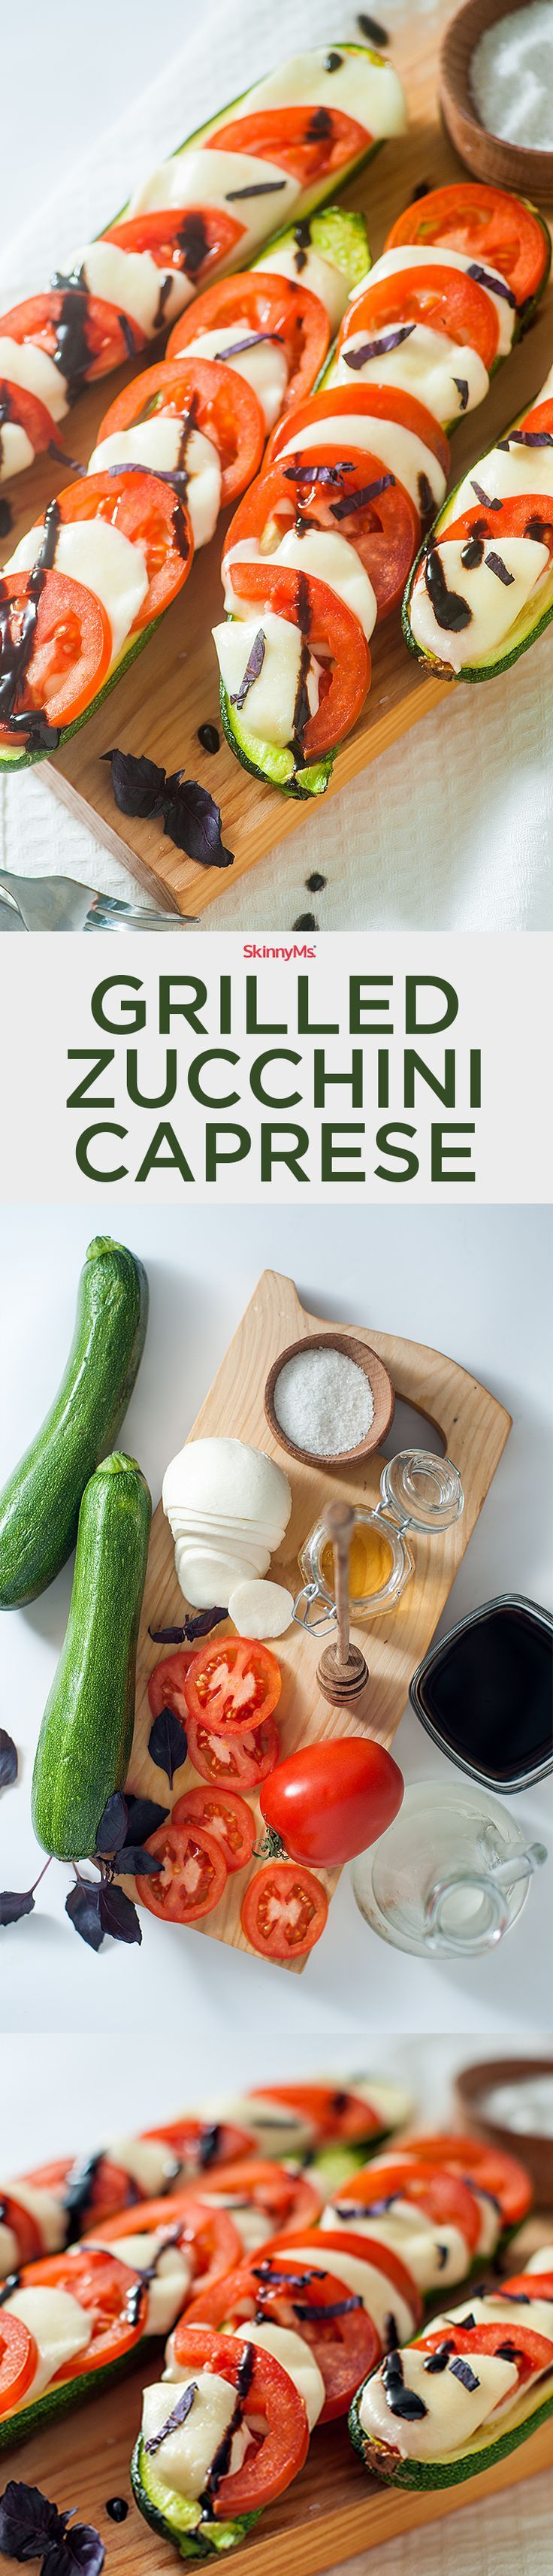 Our Grilled Zucchini Caprese is a new and improved recipe! It includes the same flavors but this time, we�ve served it alongside slices of grilled zucchini!